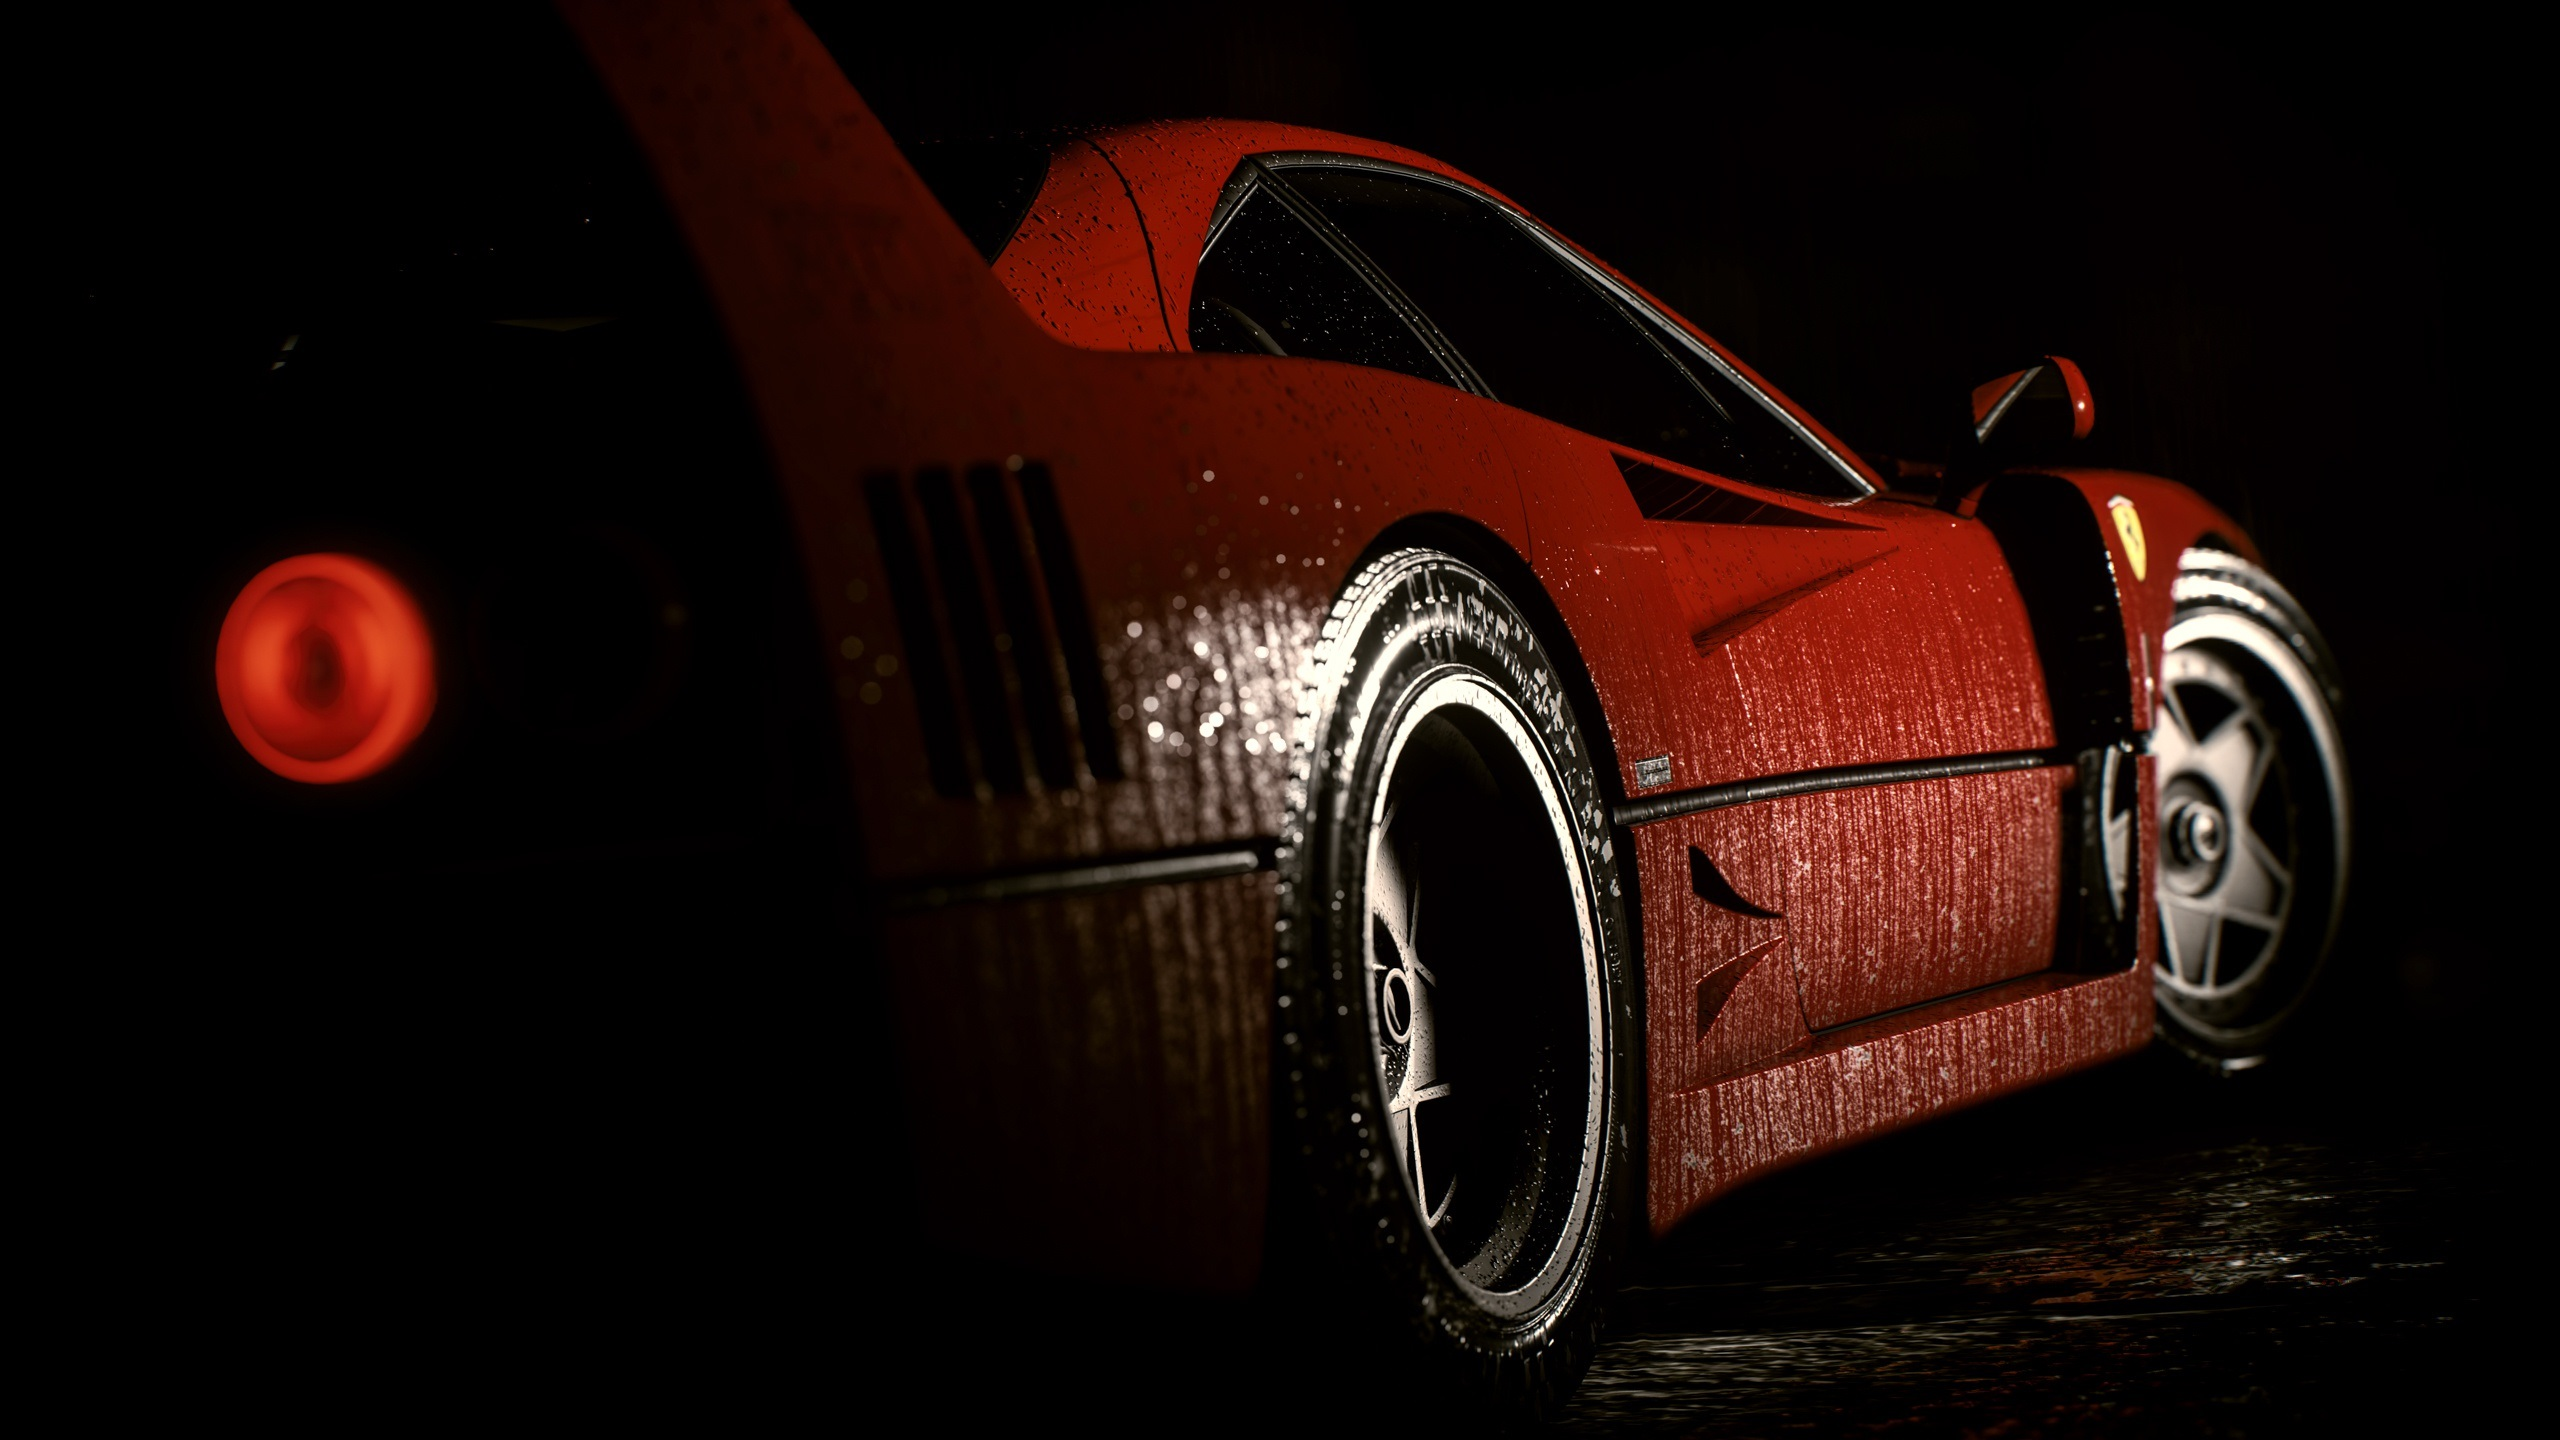 Wallpaper Red Ferrari Sports Car Side View Water Drops Night 2560x1440 Qhd Picture Image